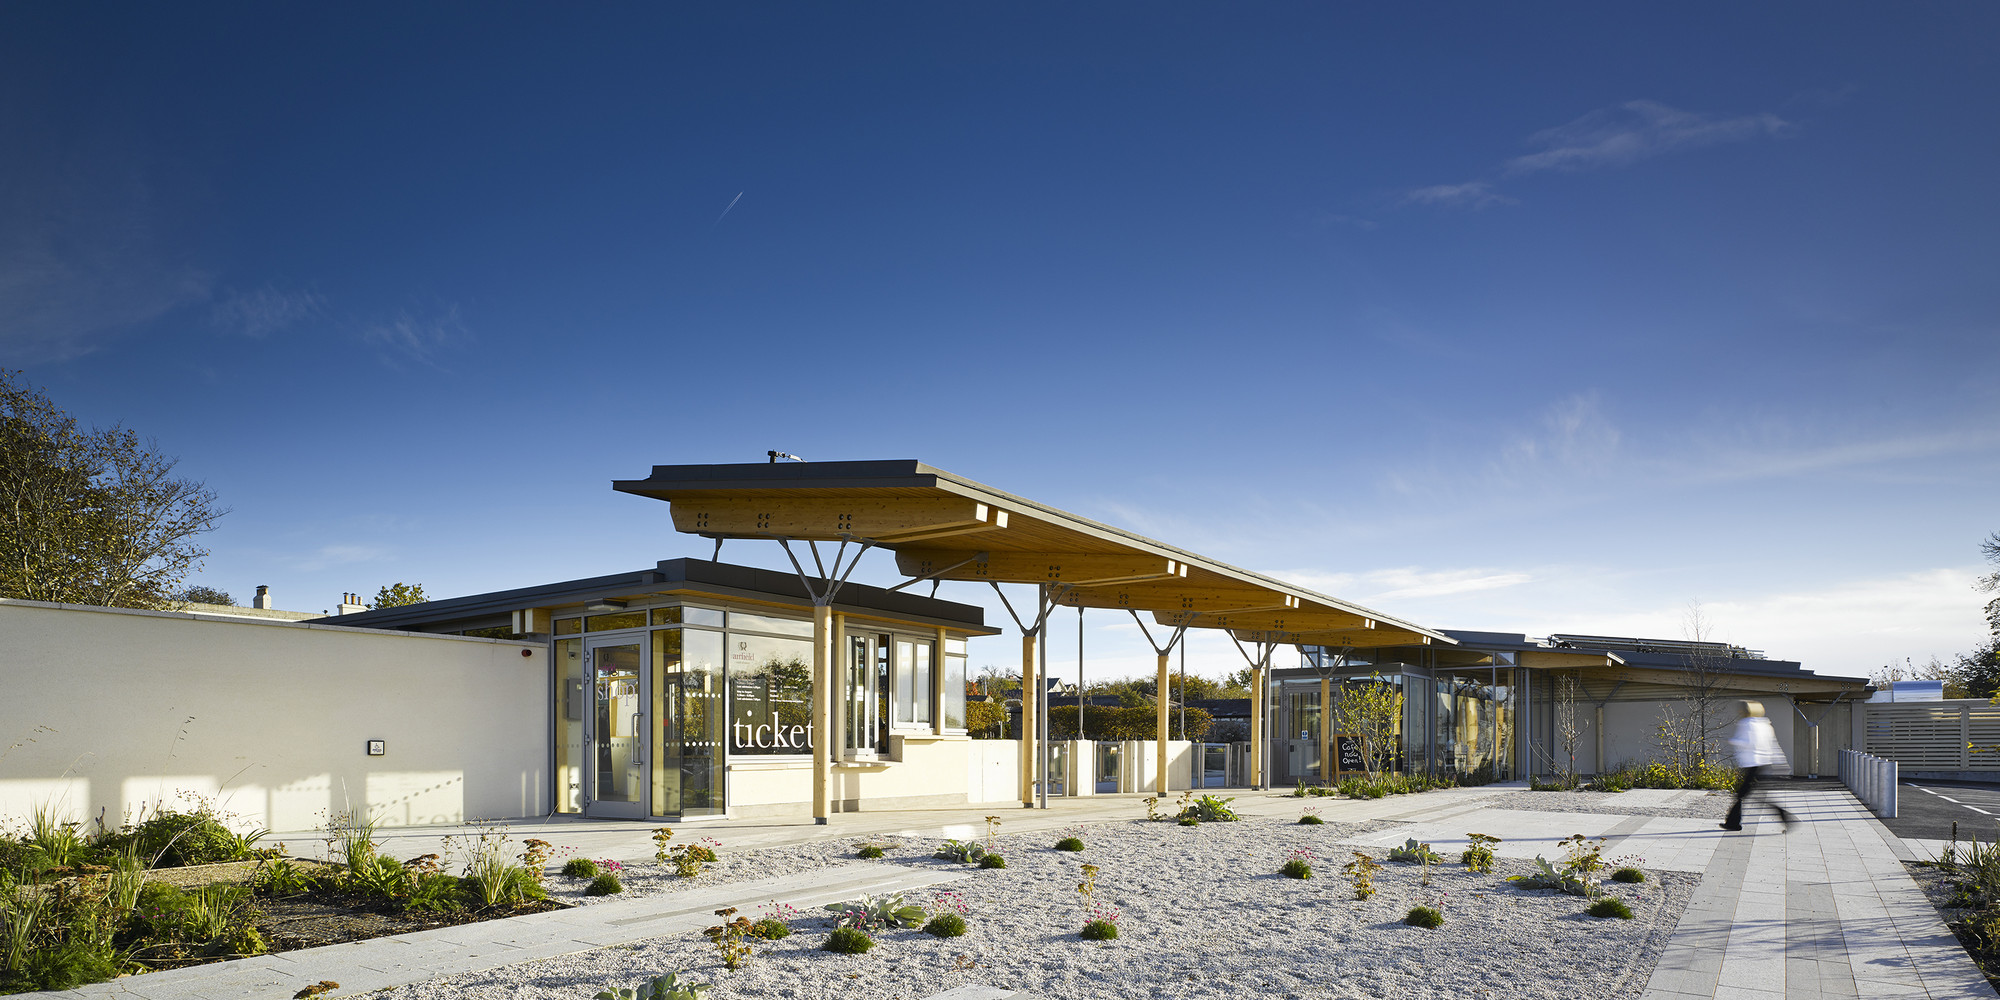 Airfield Evolution / Solearth Architecture   ArchDaily